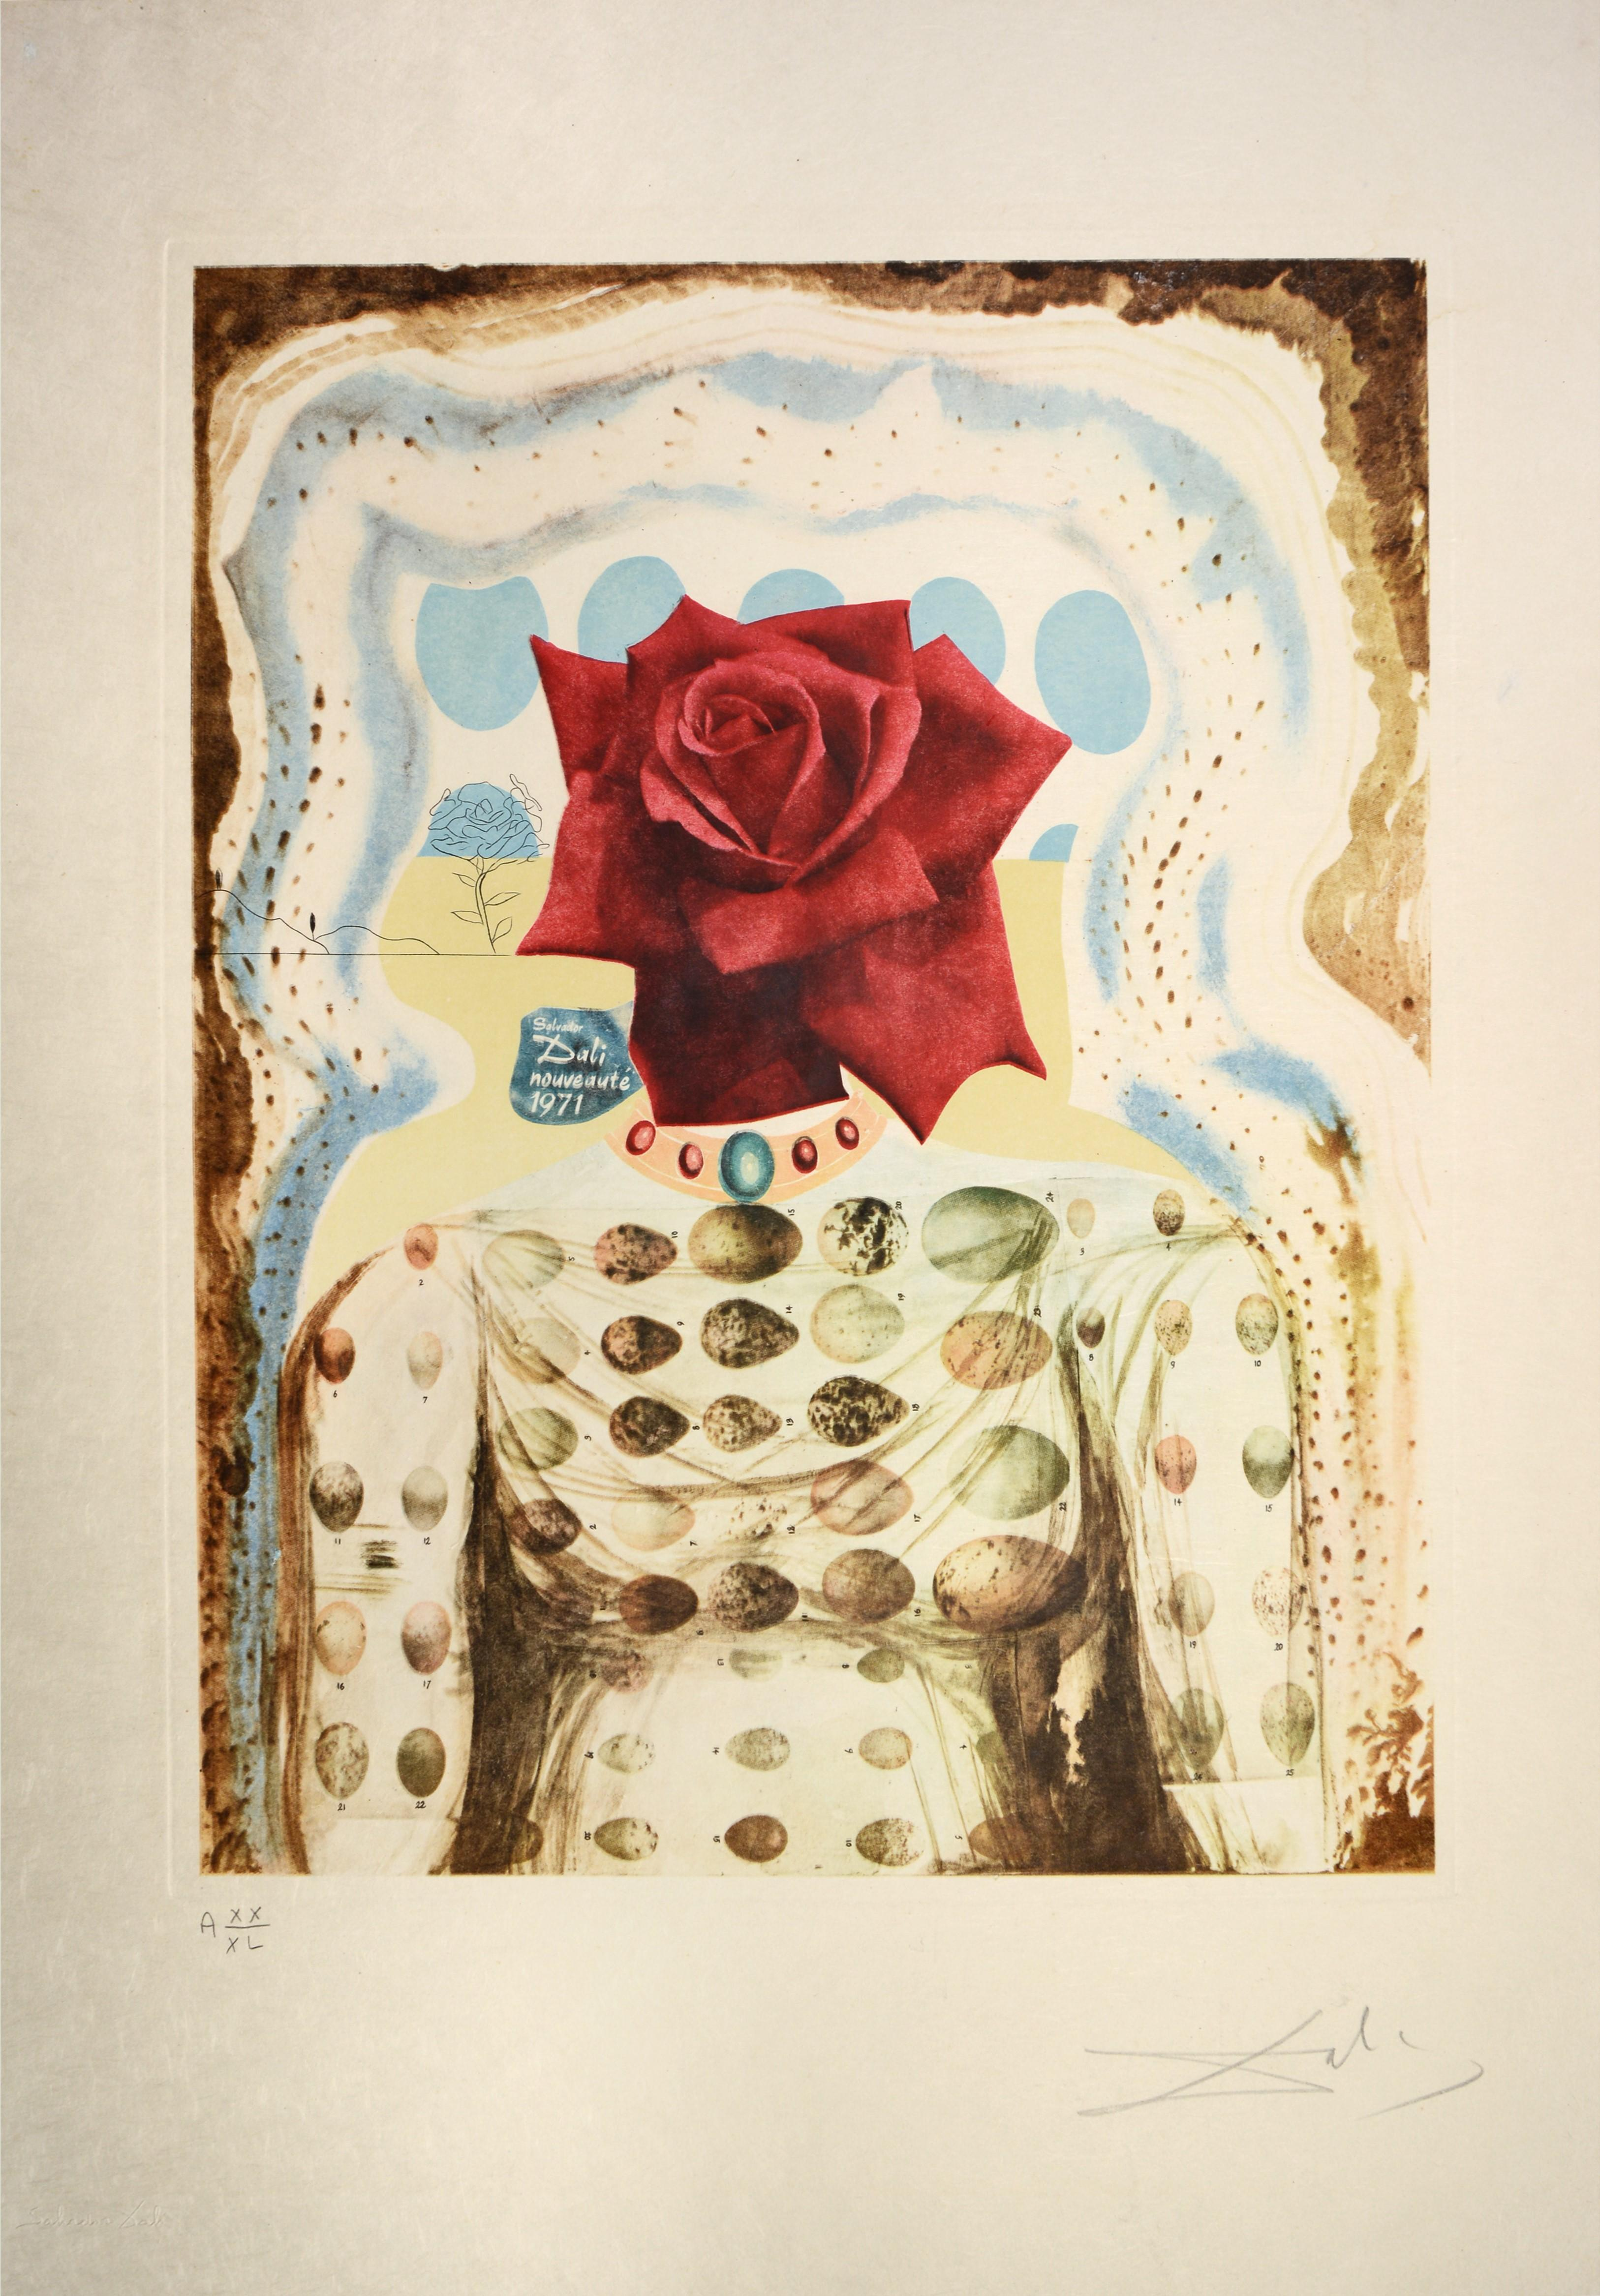 Salvador Dali Rhinoceros Etching Salvador Dalí­ - Salvador Dali, Surrealist Flower Girl